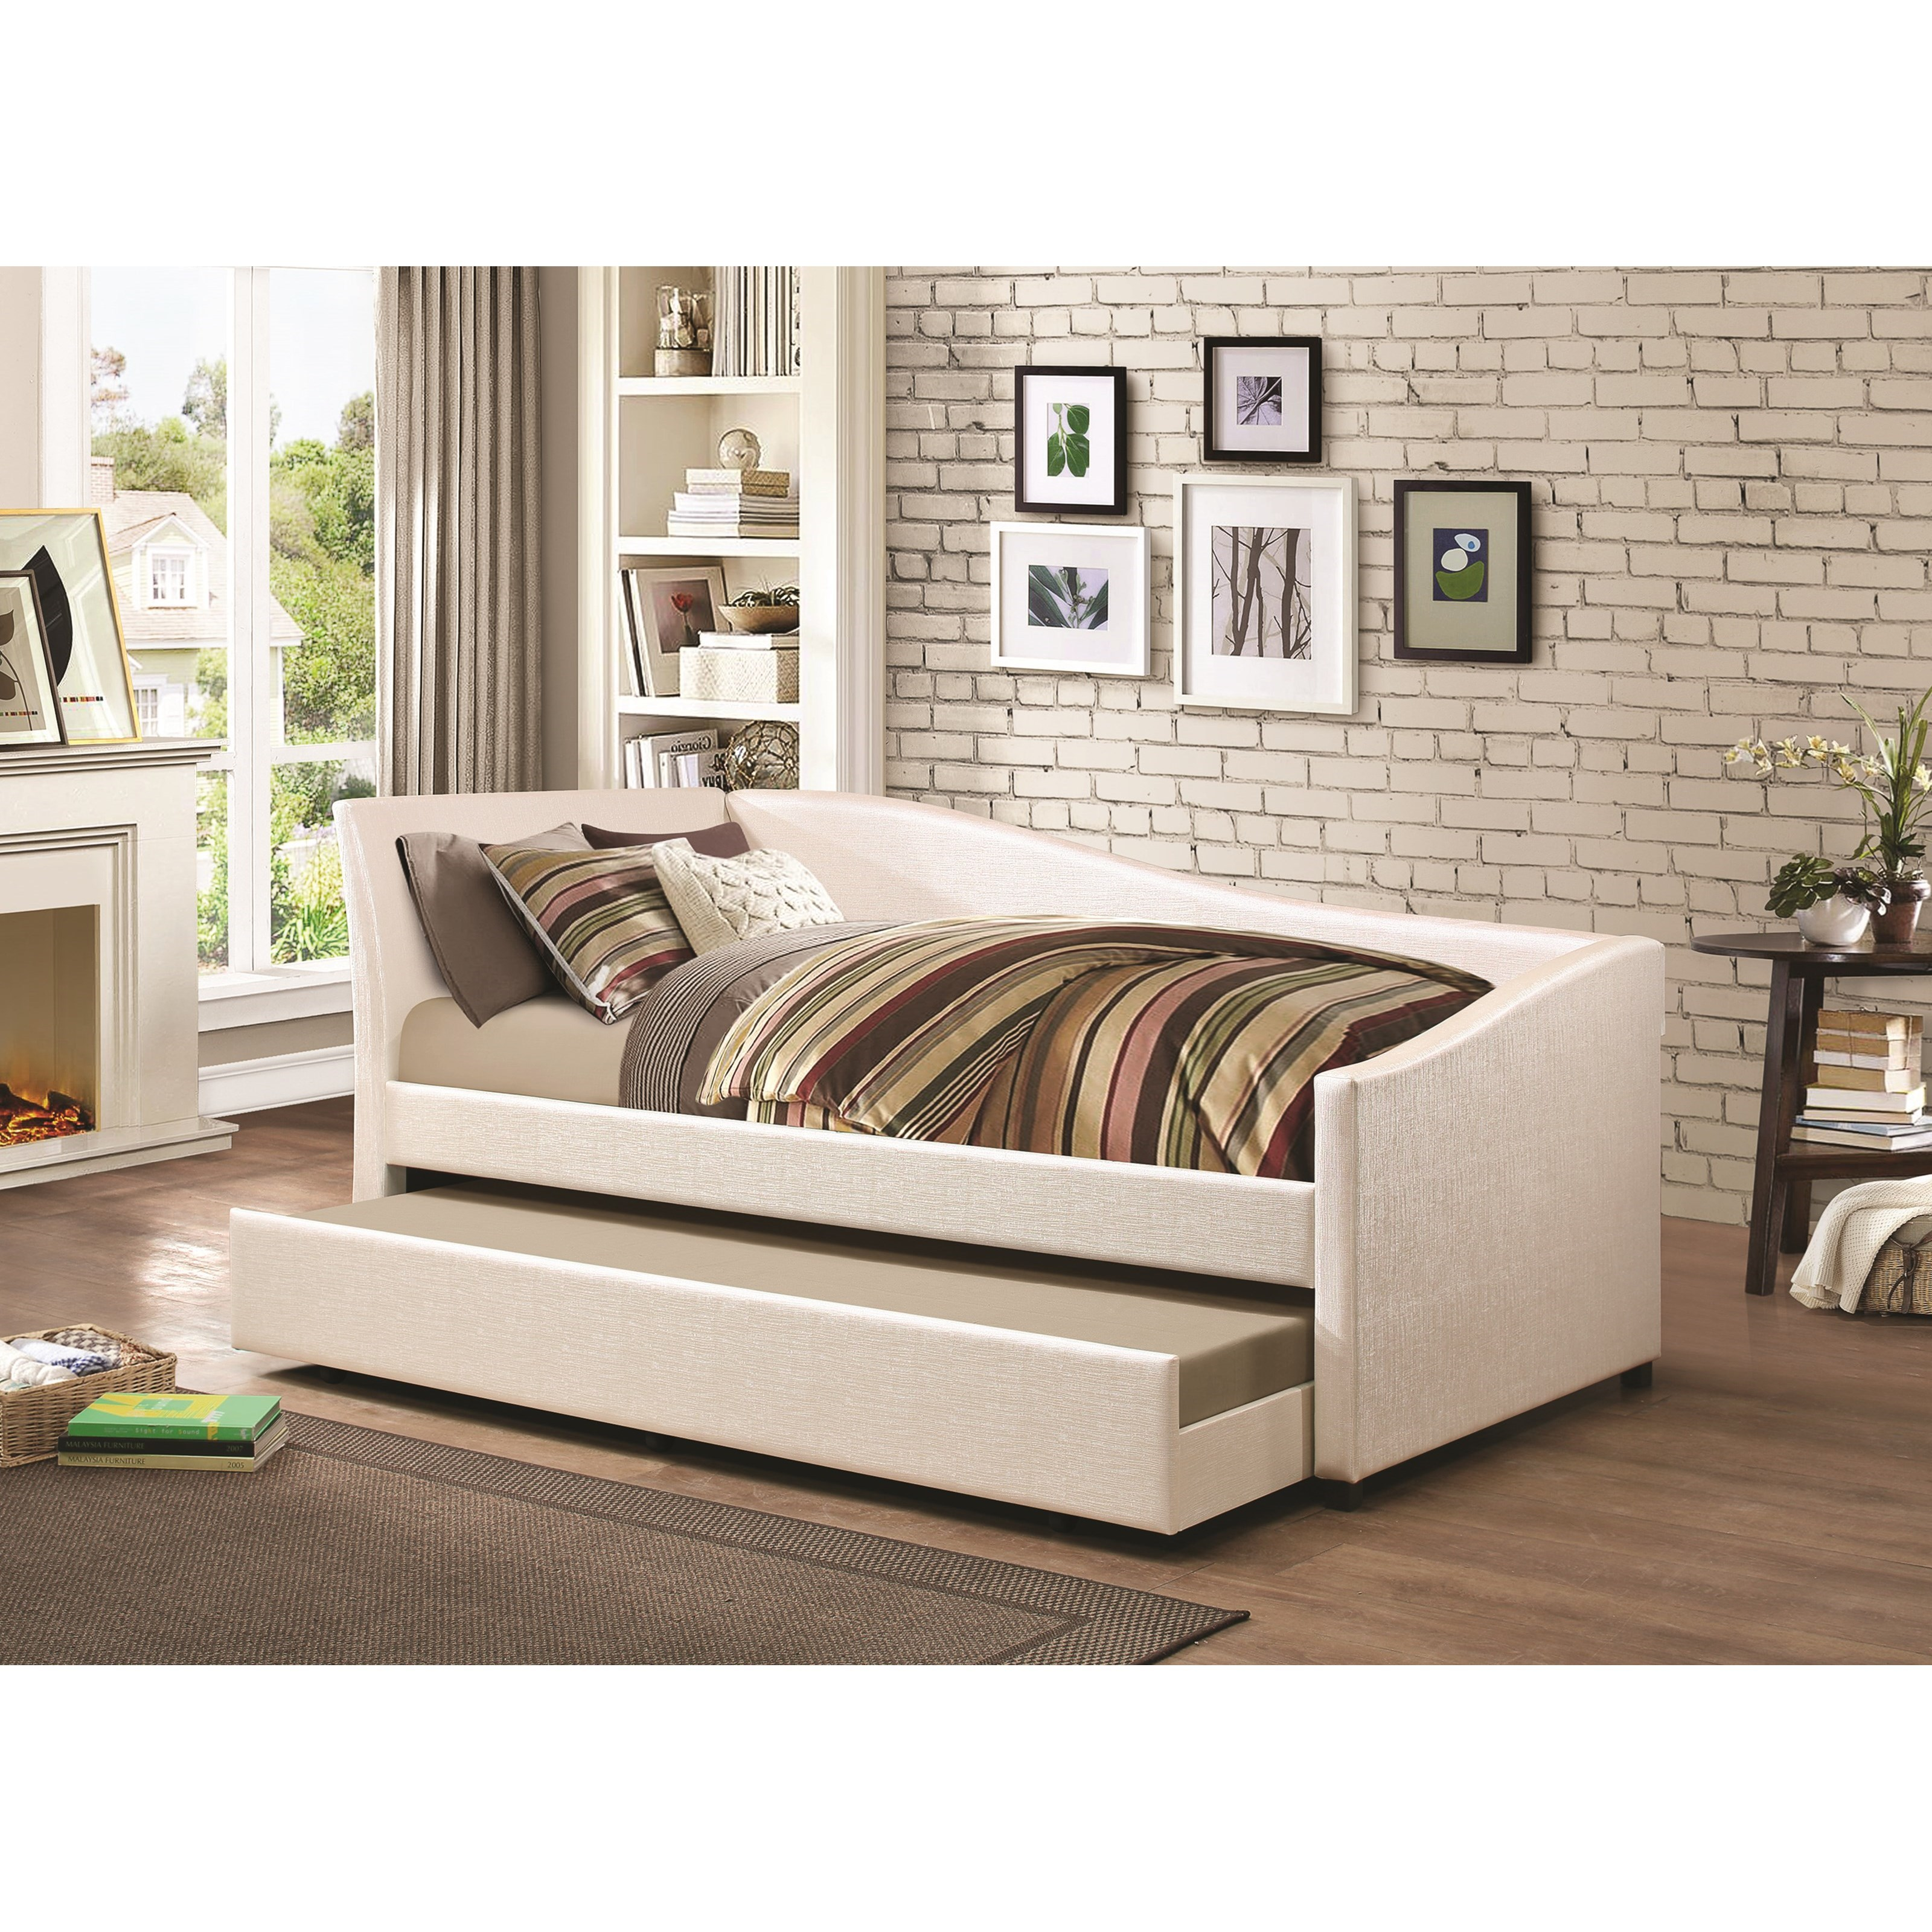 Coaster Daybeds By Coaster 300509 Twin Daybed With